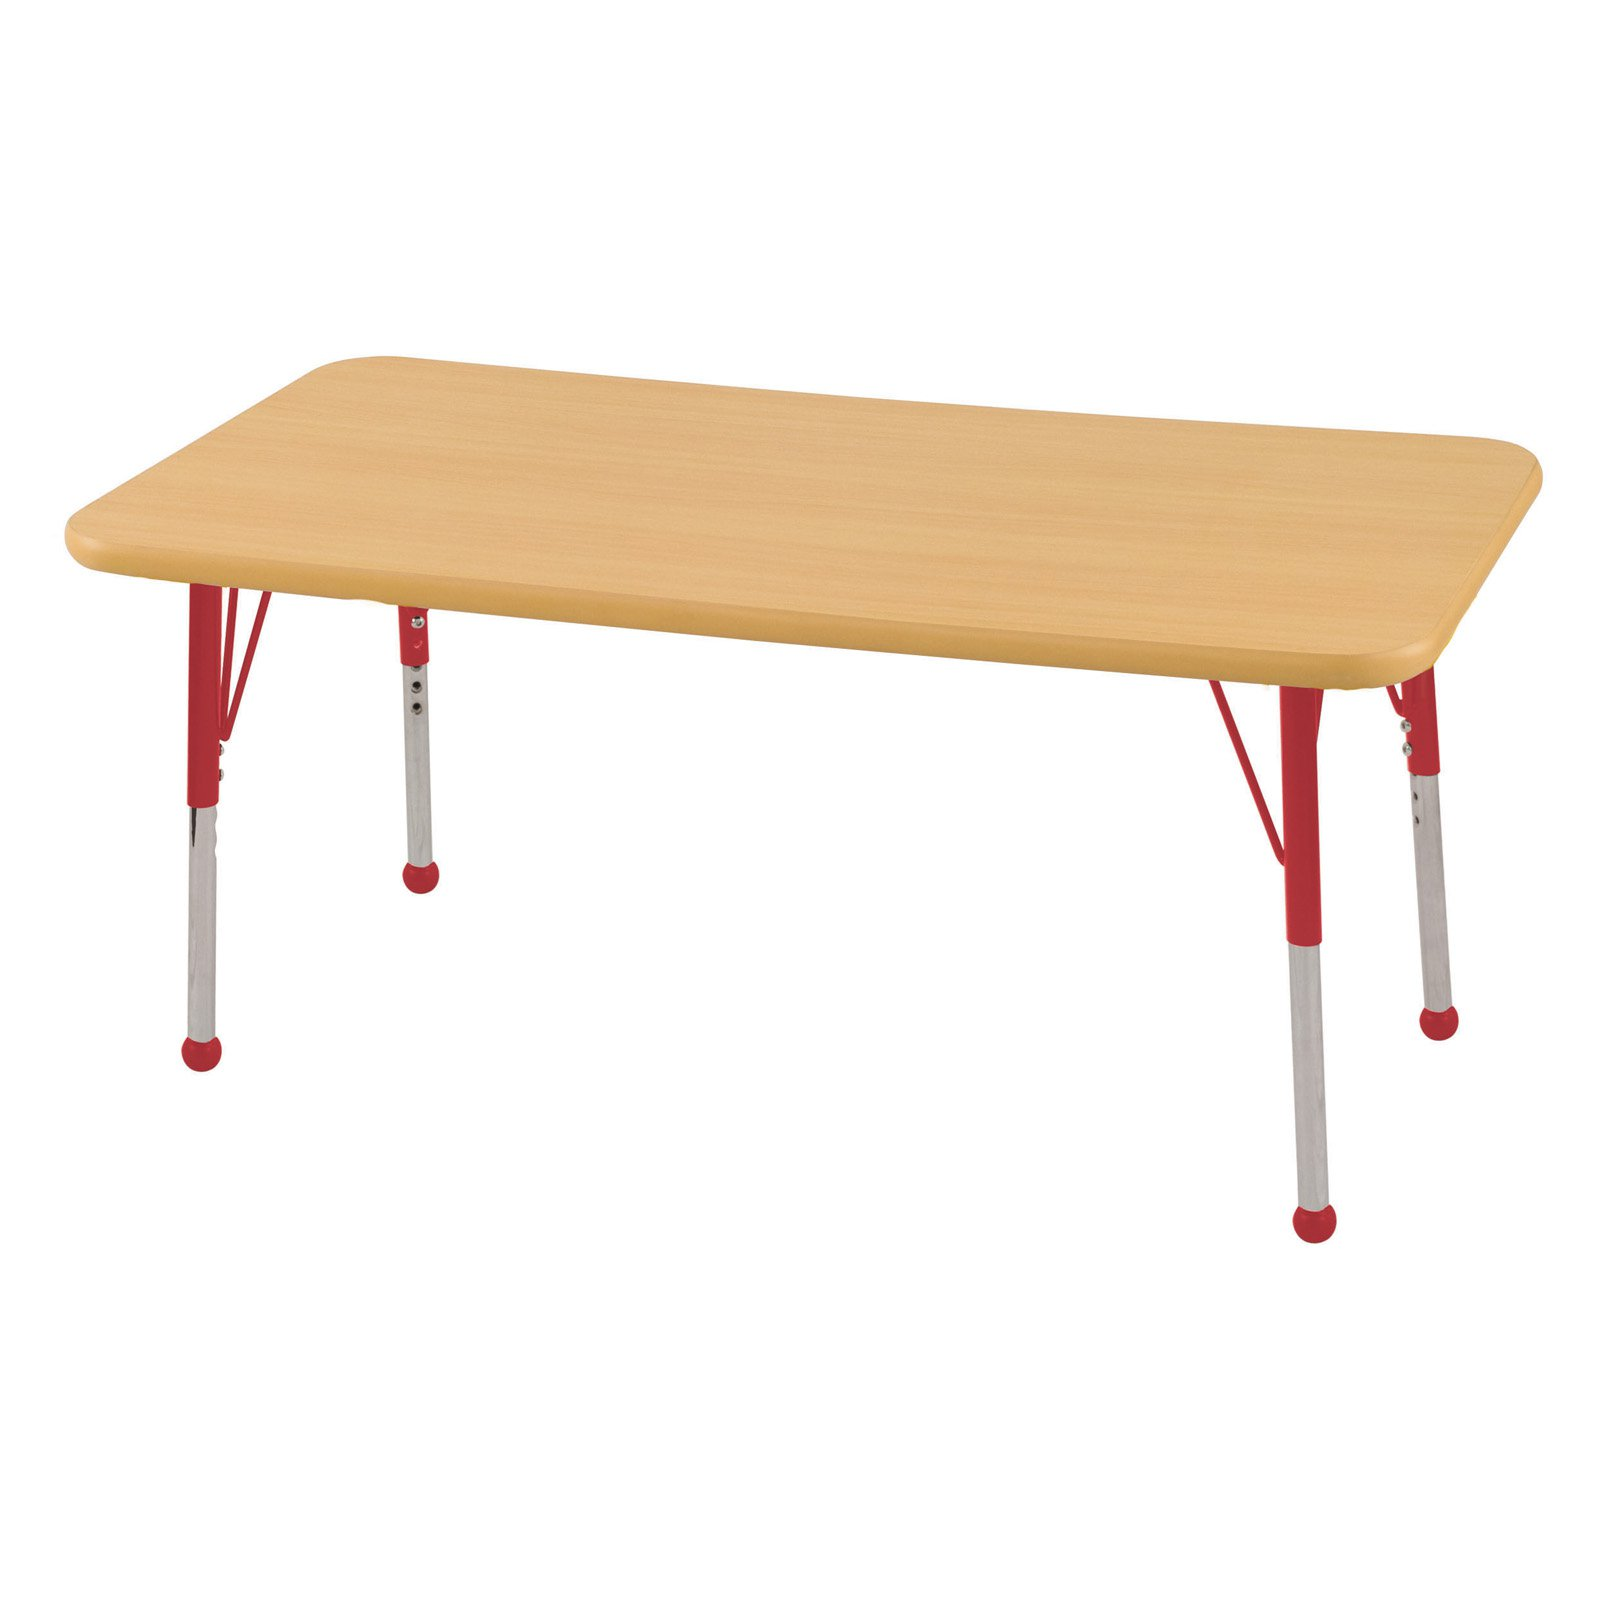 ECR4KIDS Maple Rectangle Activity Table with Maple Edge - Chunky Legs - 24L x 48W in.